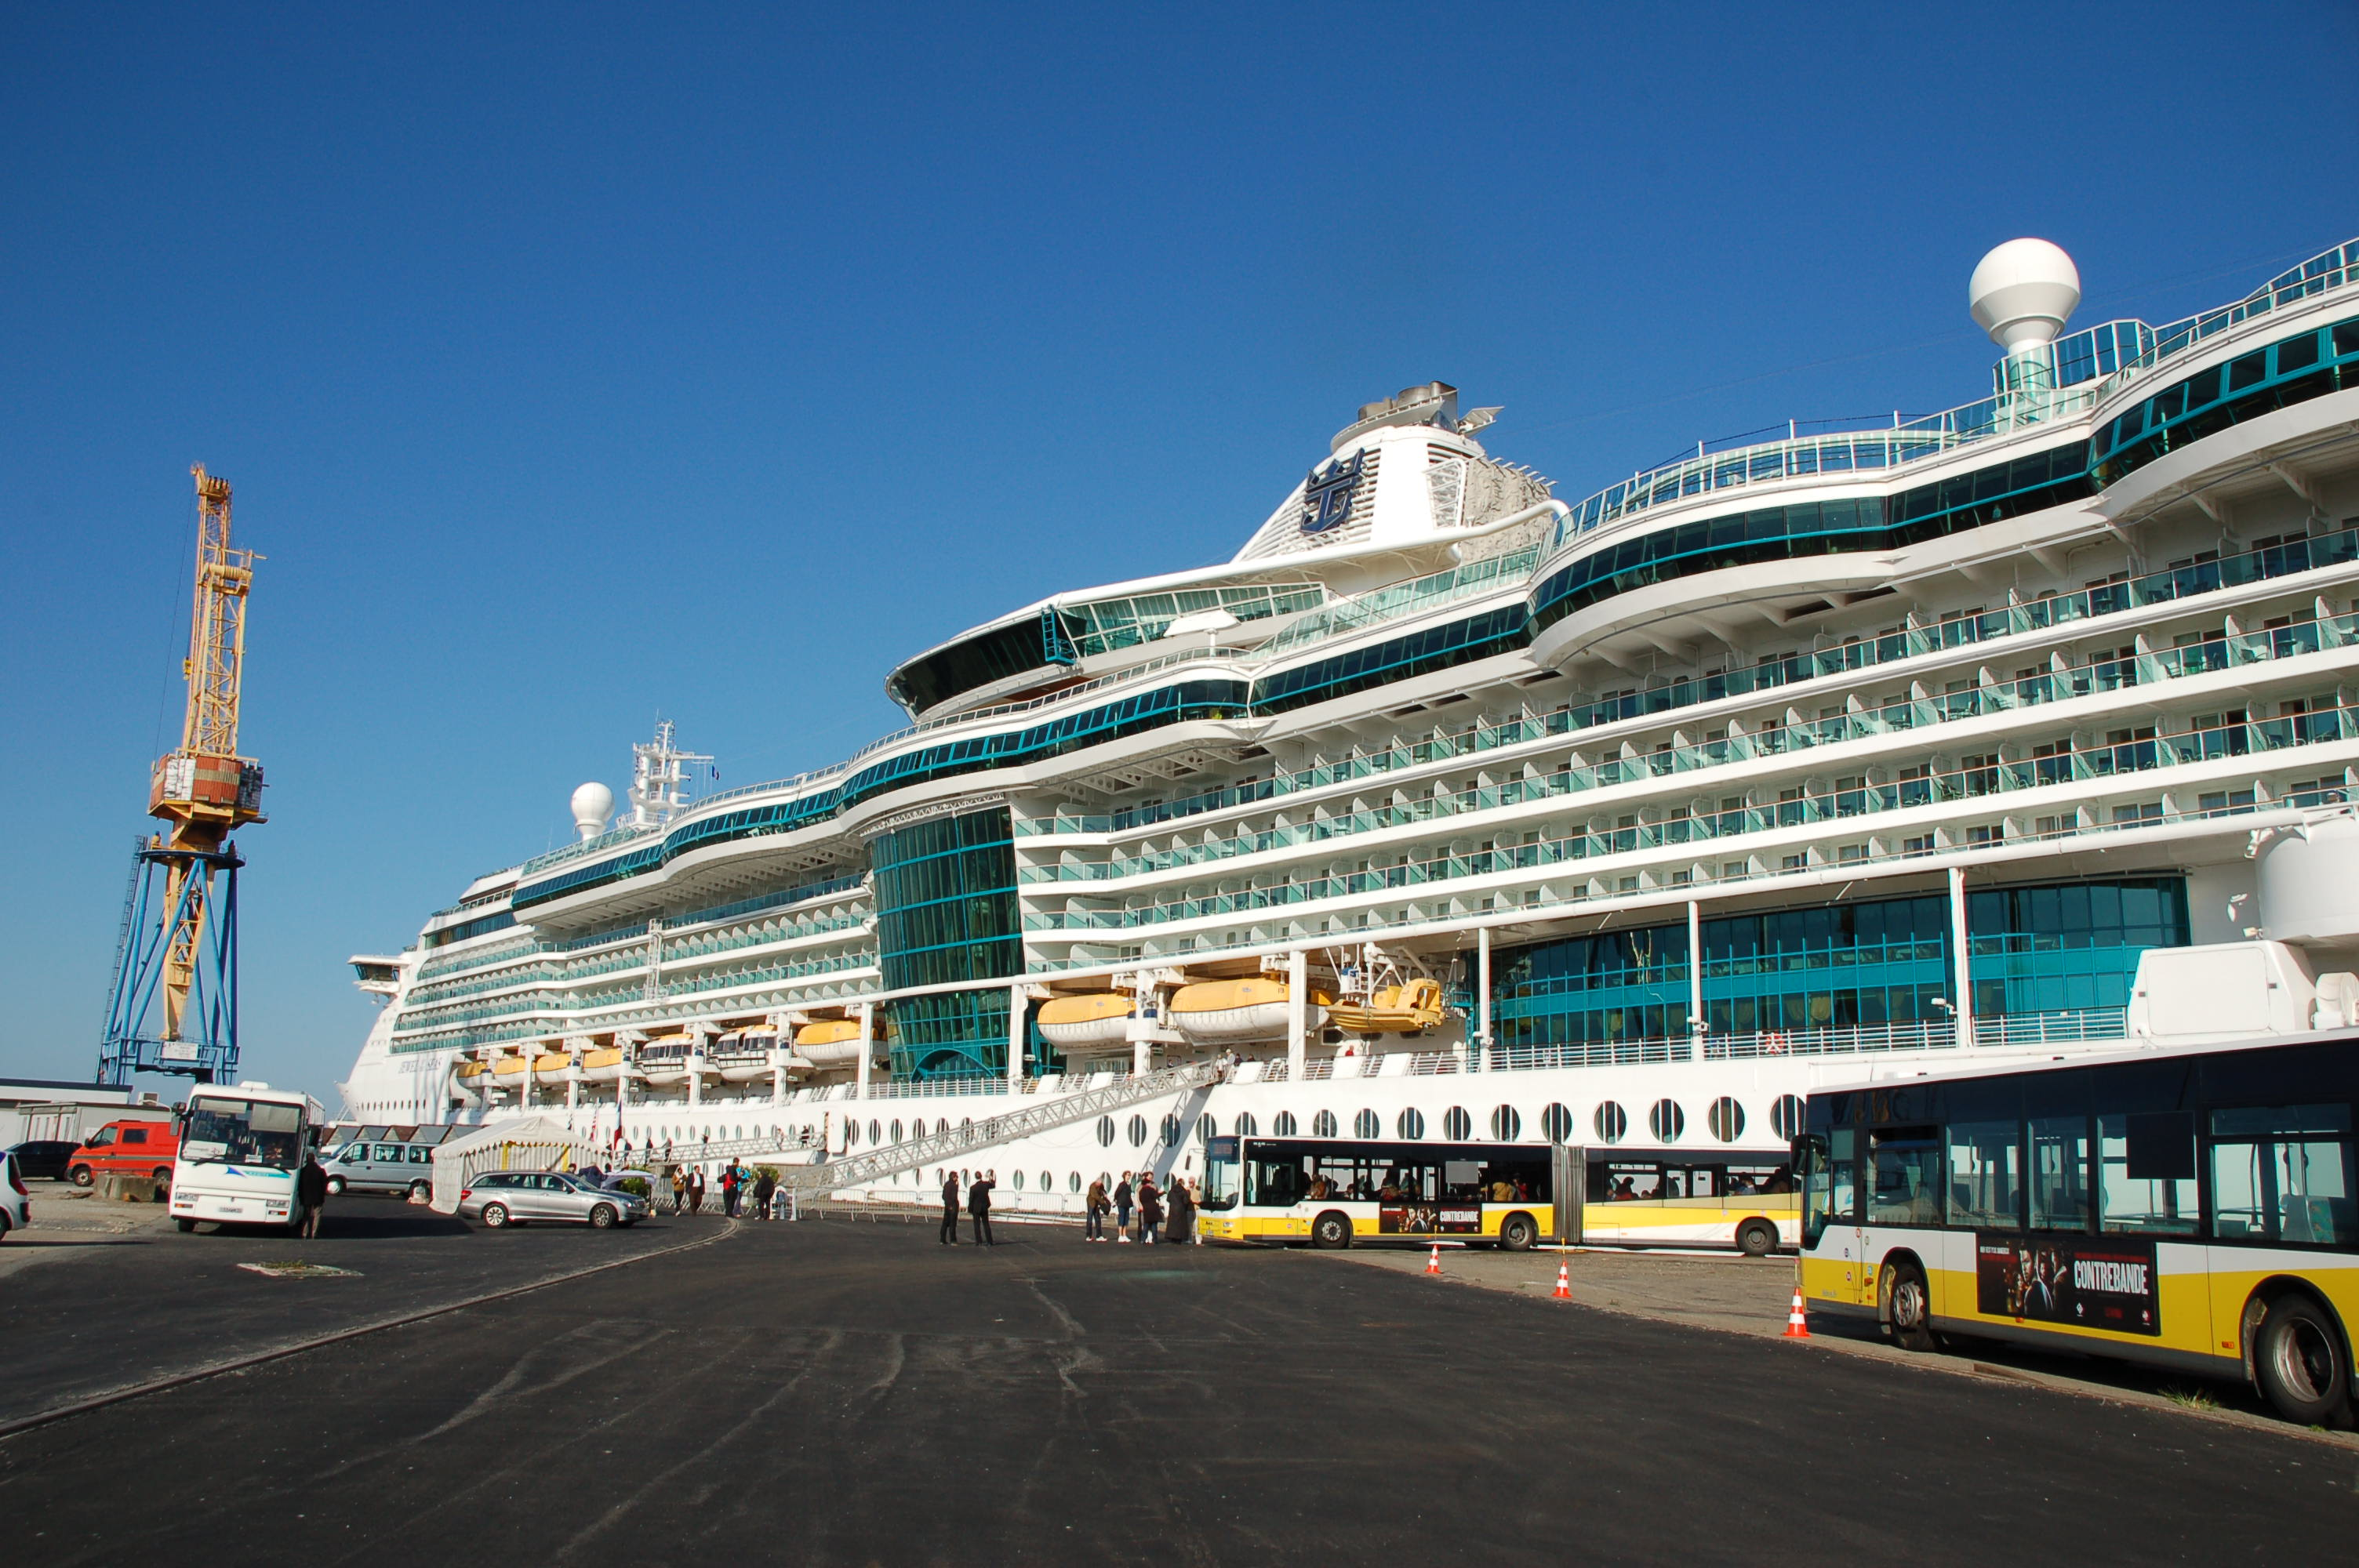 A cruise call in the port of Brest